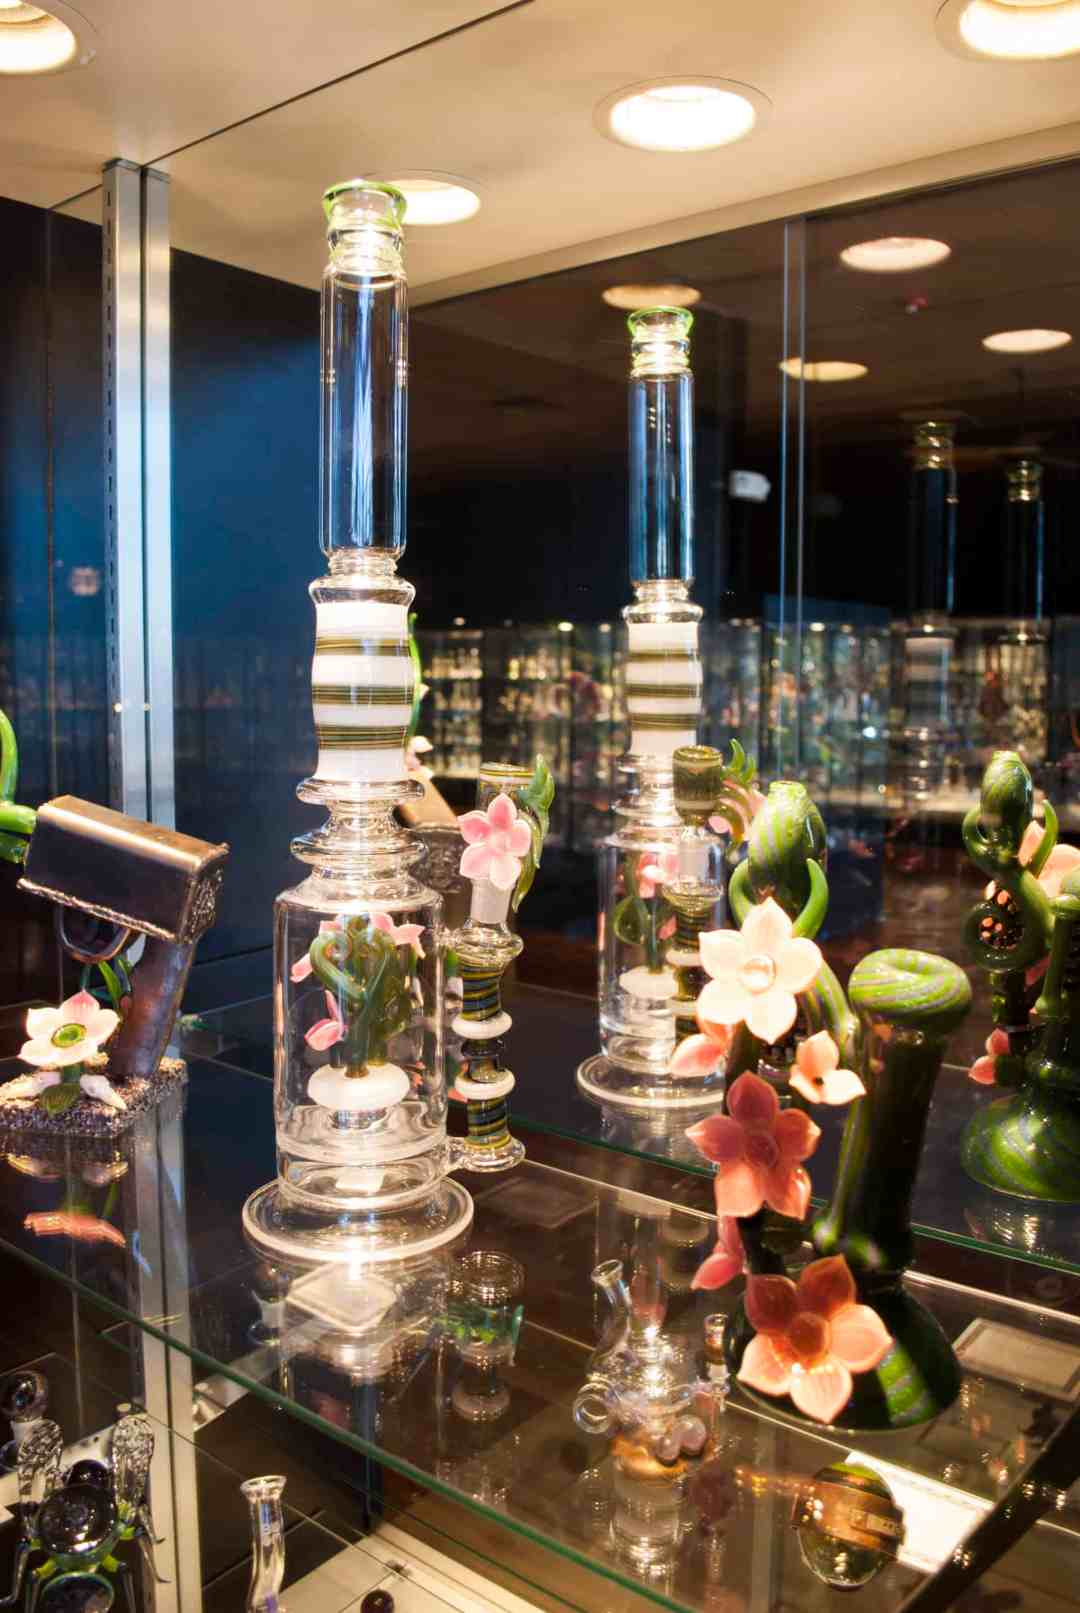 Illuzion Glass Galleries - Fine art you can smoke from